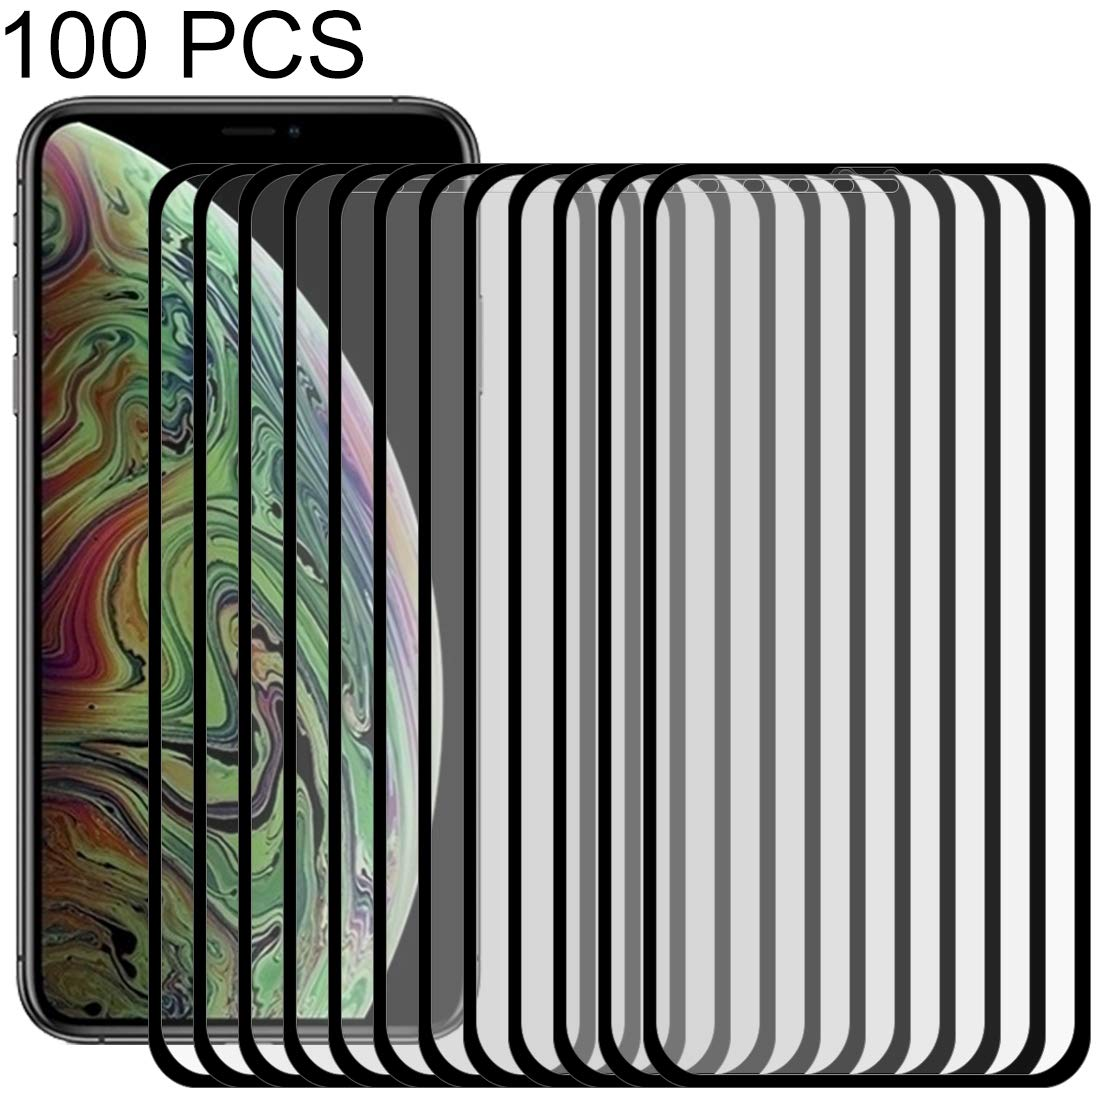 YCDZ STORE Glass Film 100 PCS 9H 10D Full Screen Tempered Glass Screen Protector for iPhone Xs Max(Black)